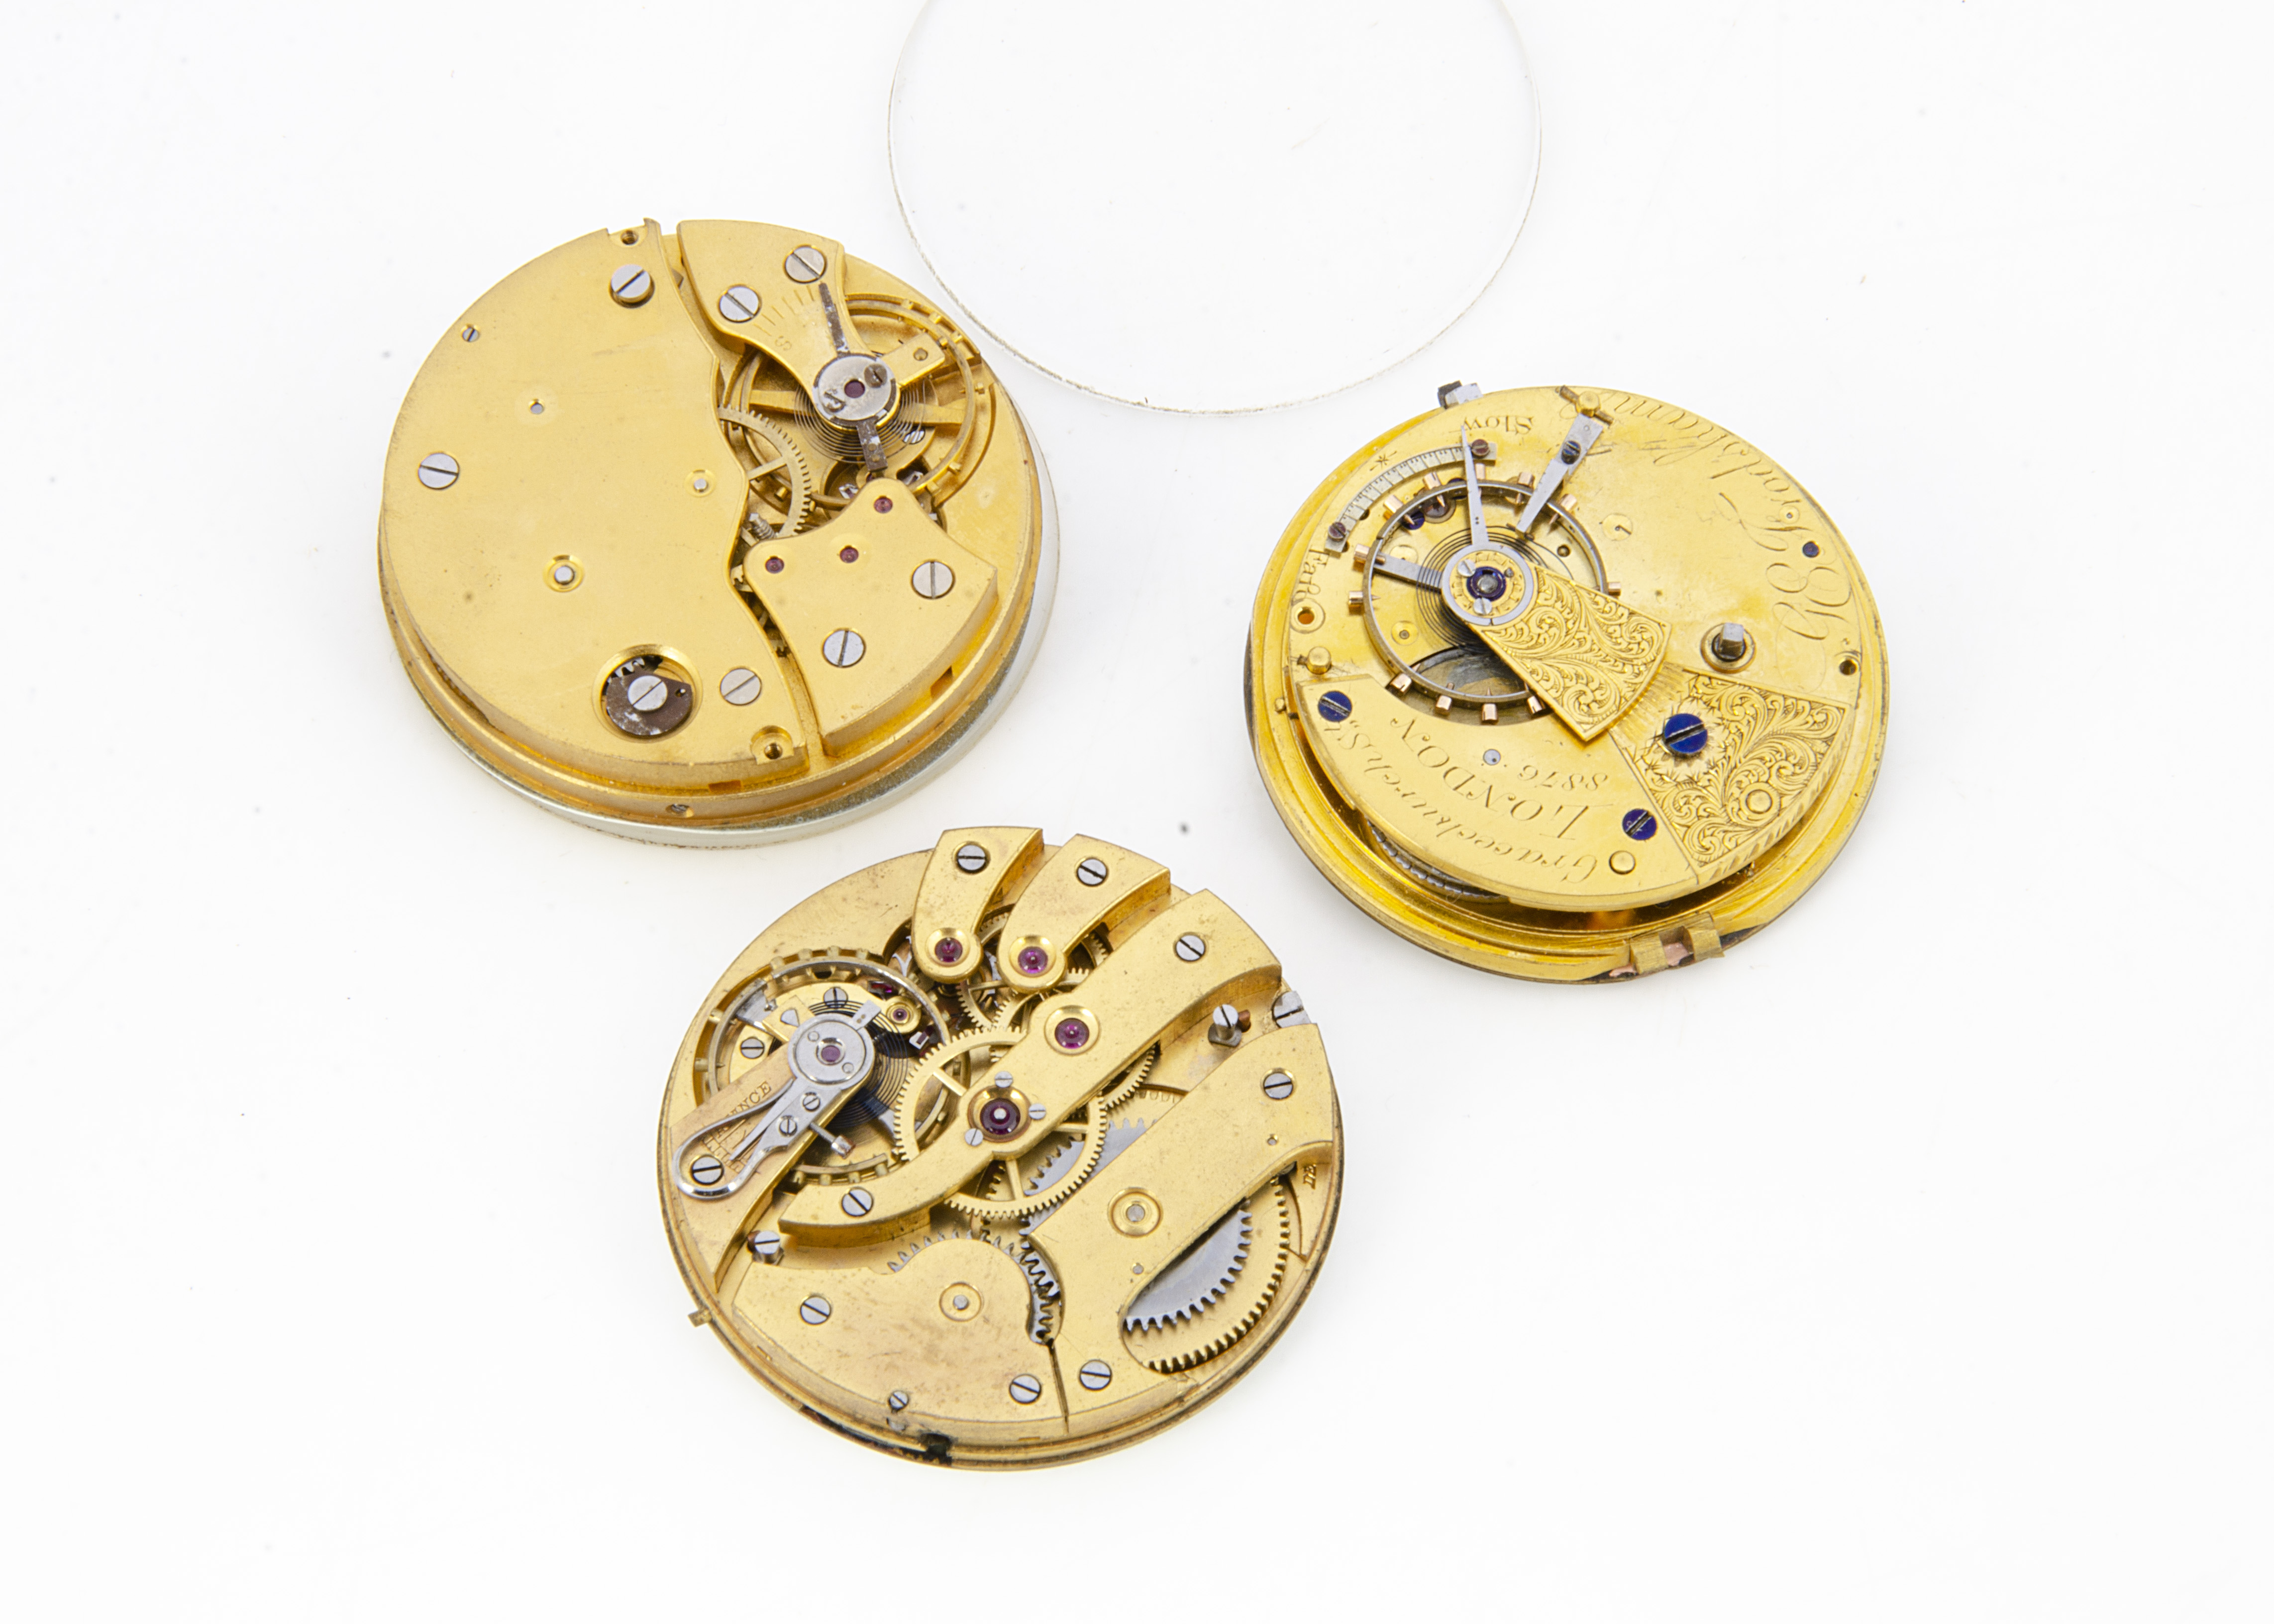 Three pocket watch movements, one by Frodsham, running, dial AF, and two others